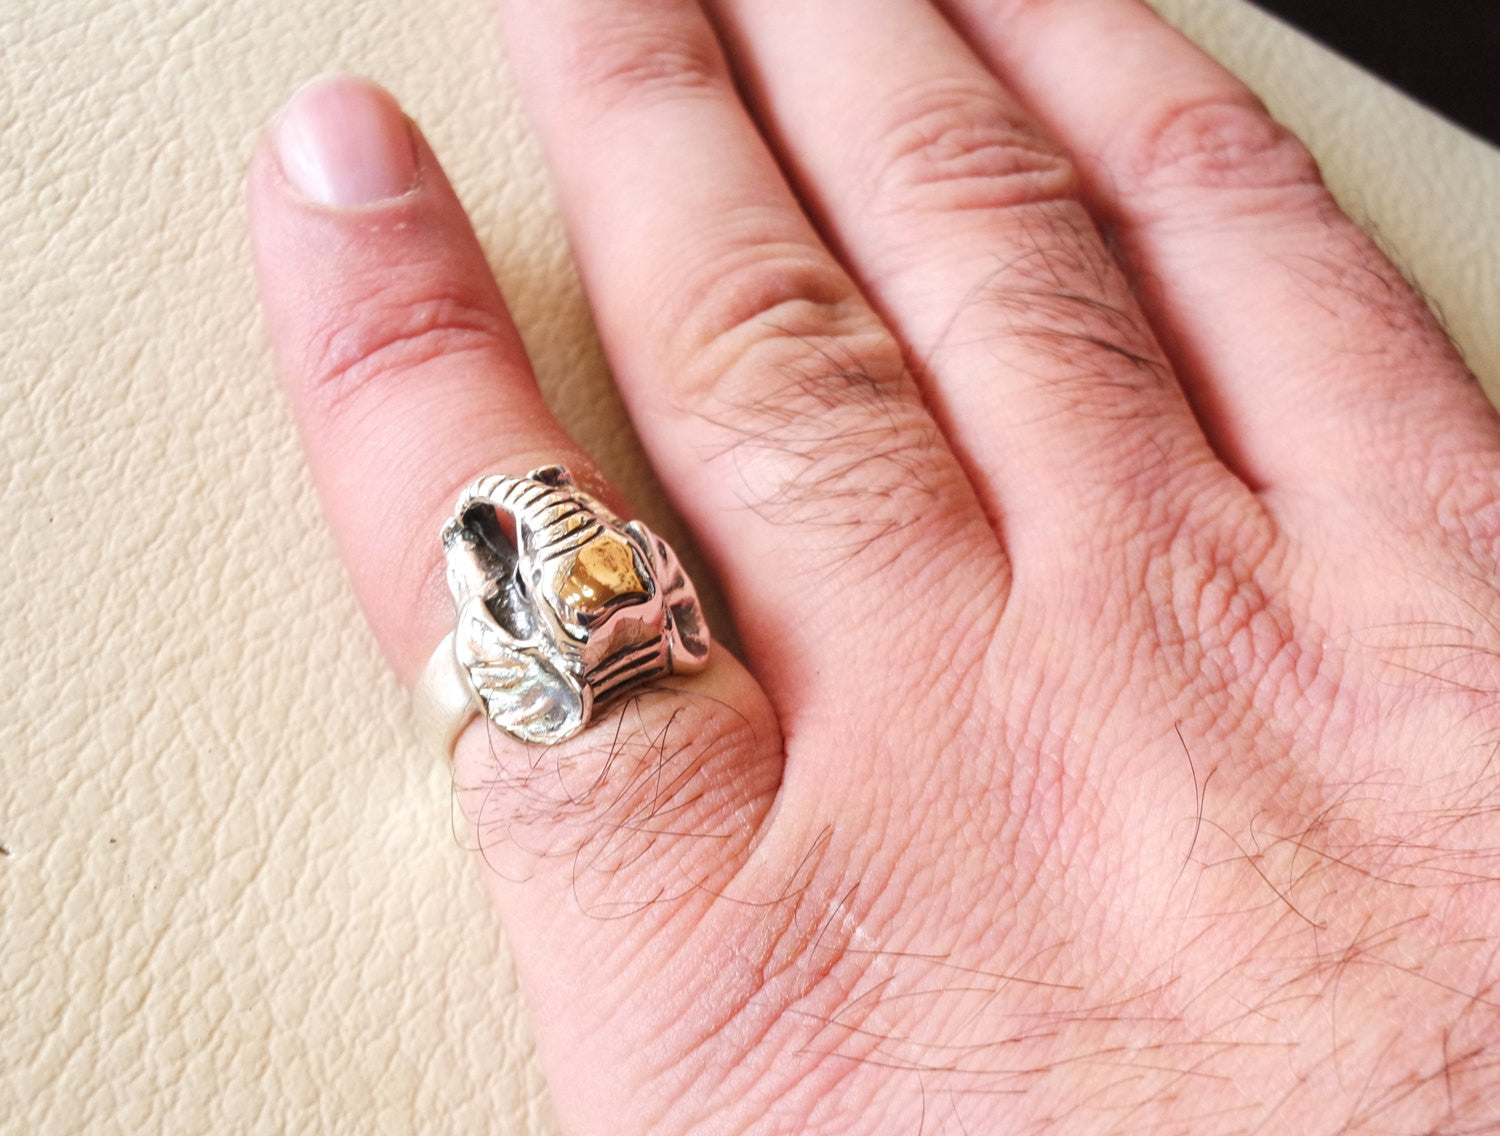 elephant pinkie ring sterling silver 925 man biker ring all sizes handmade animal jewelry fast shipping detailed craftsmanship